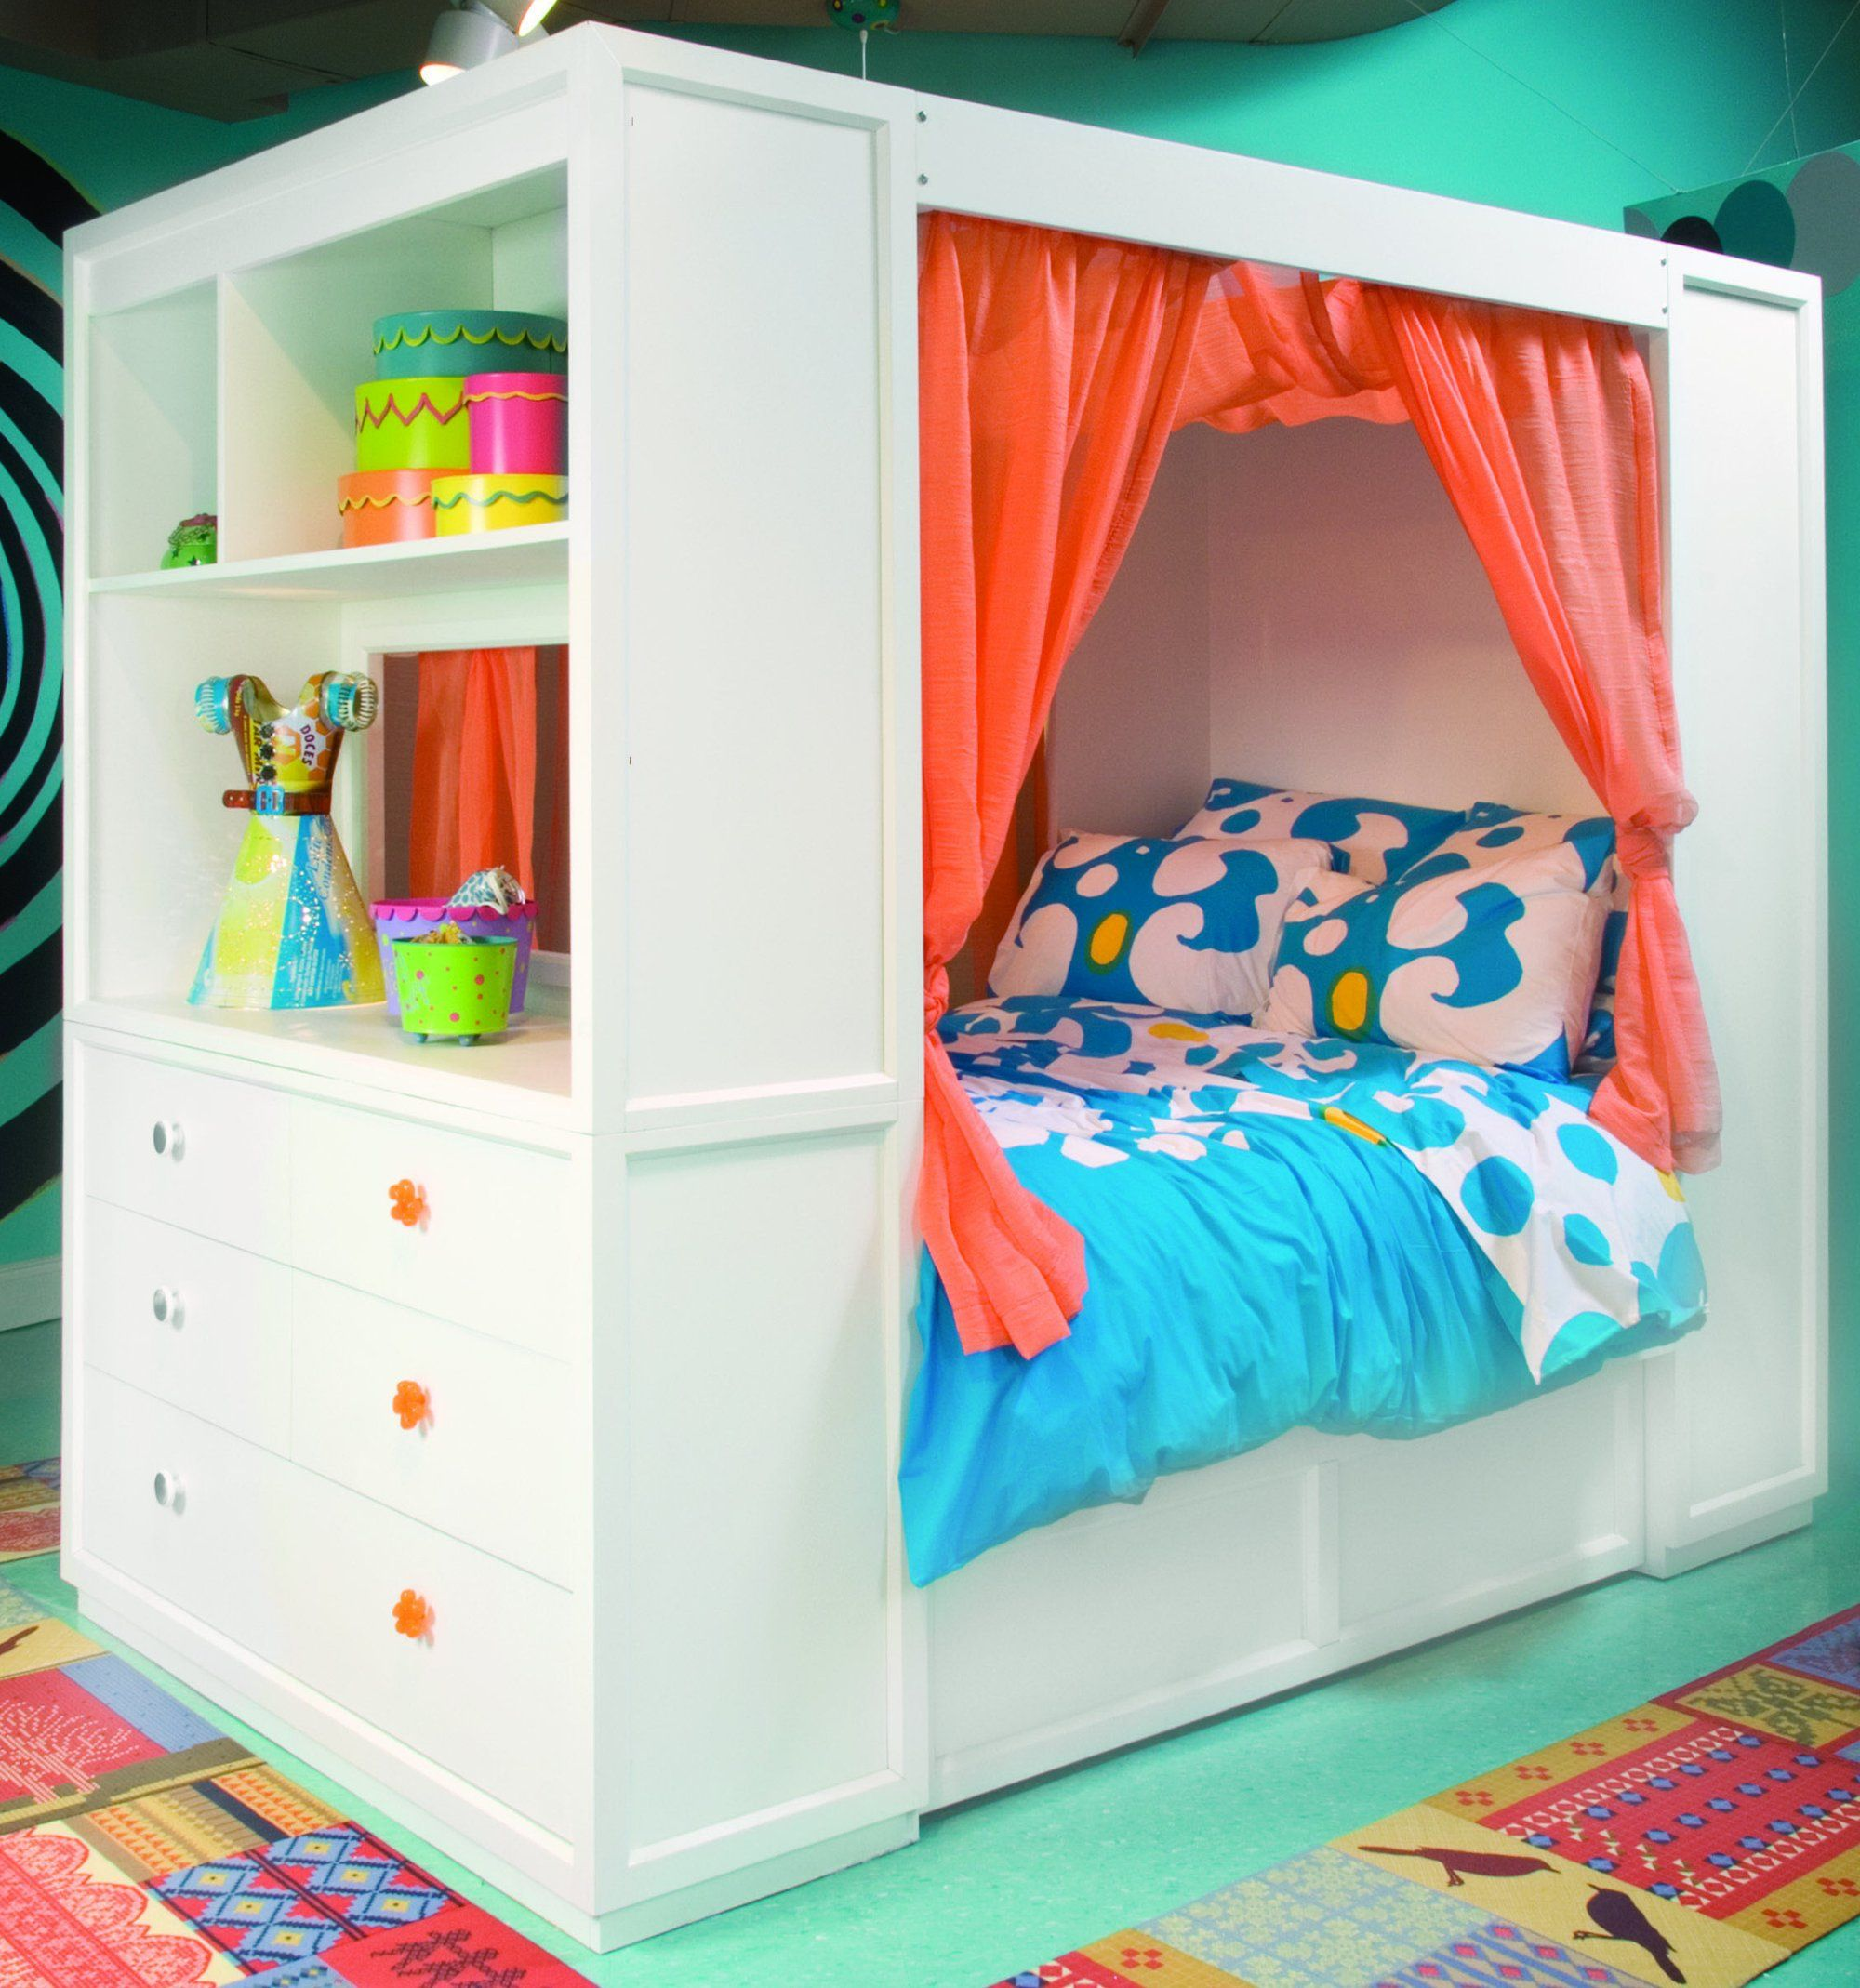 Creative Bedrooms That Any Teenager Will Love: Pin On Just Houses